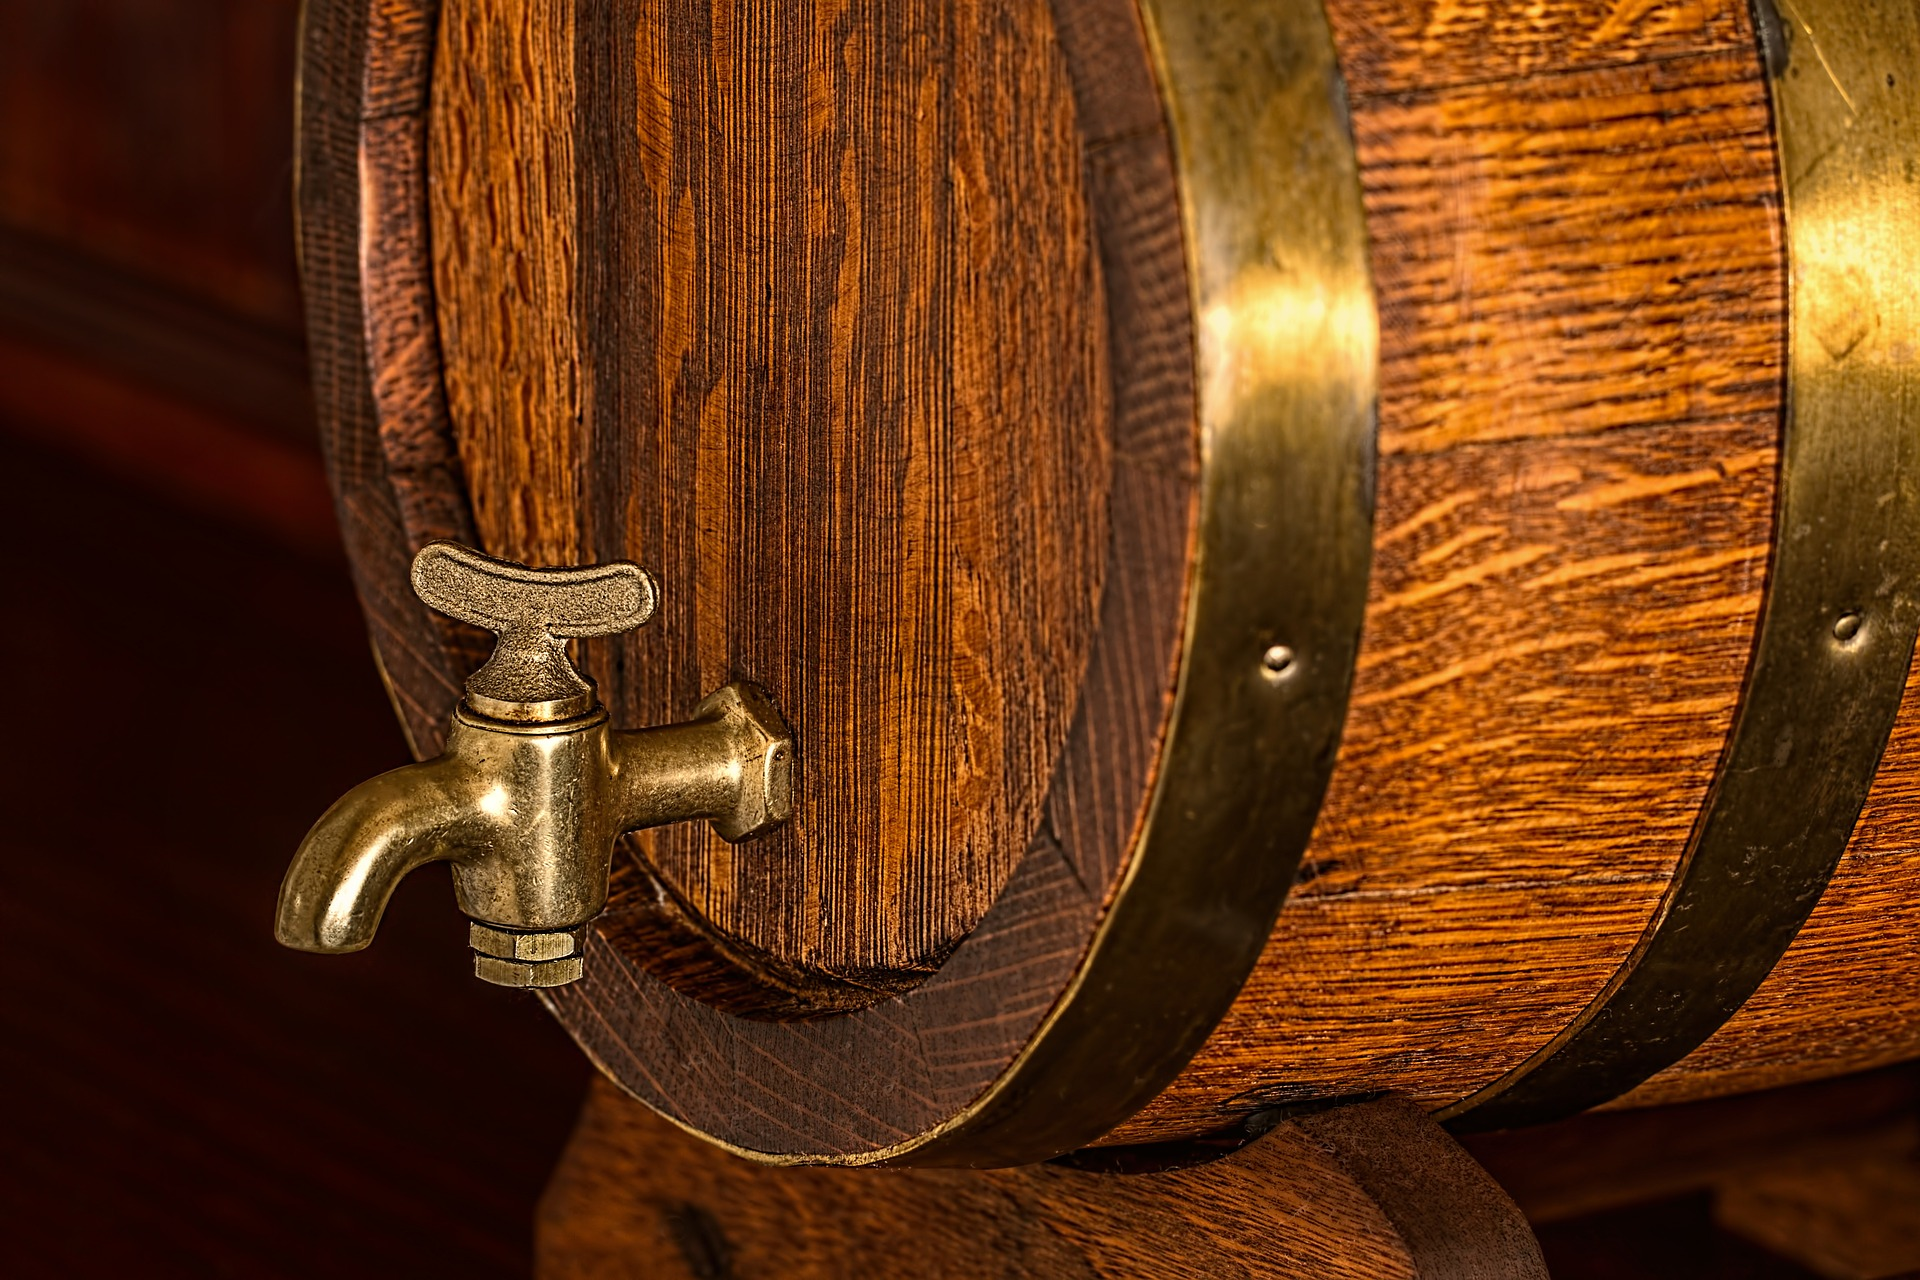 beer-barrel-956322_1920